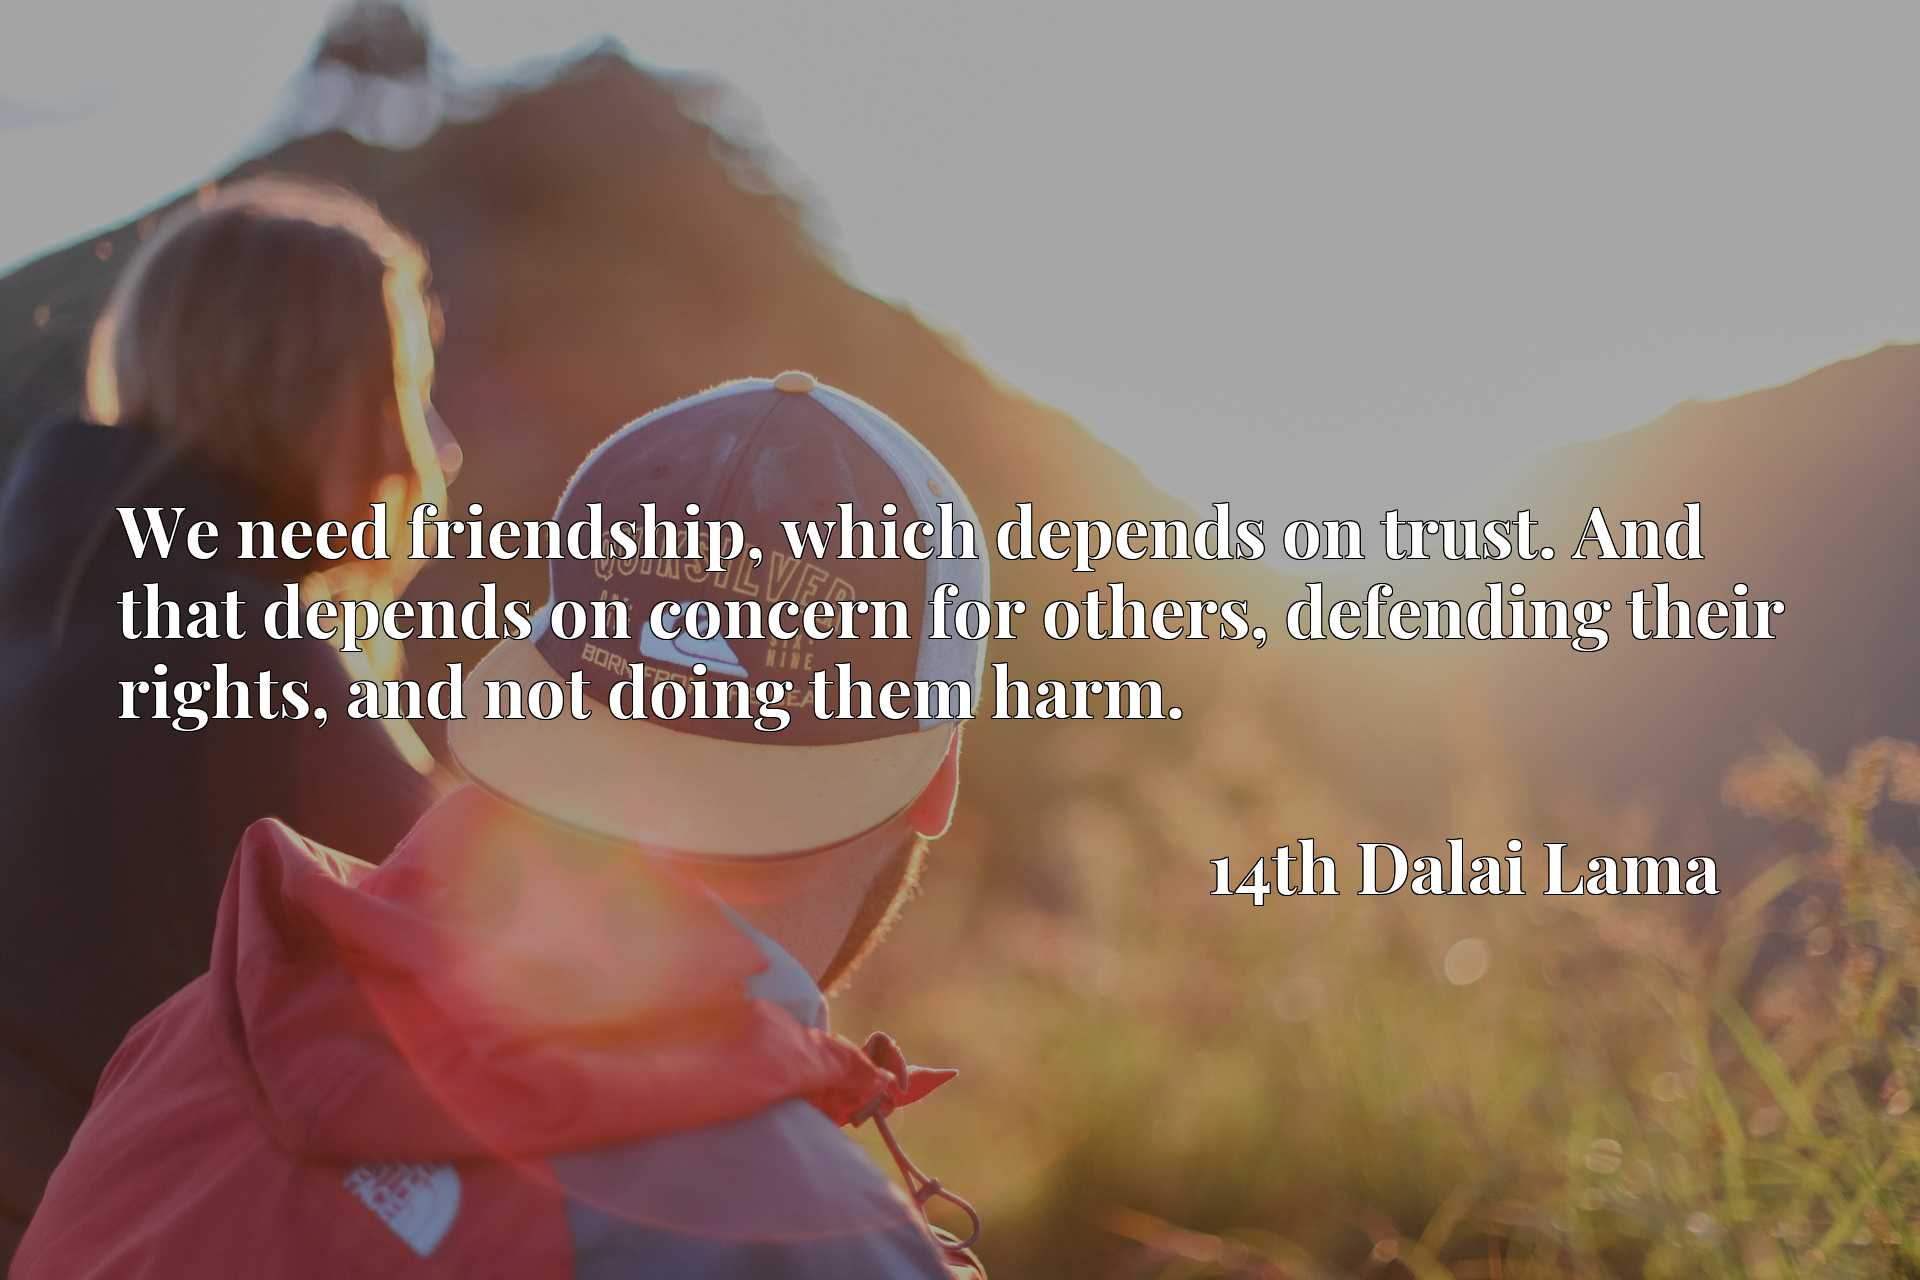 We need friendship, which depends on trust. And that depends on concern for others, defending their rights, and not doing them harm.